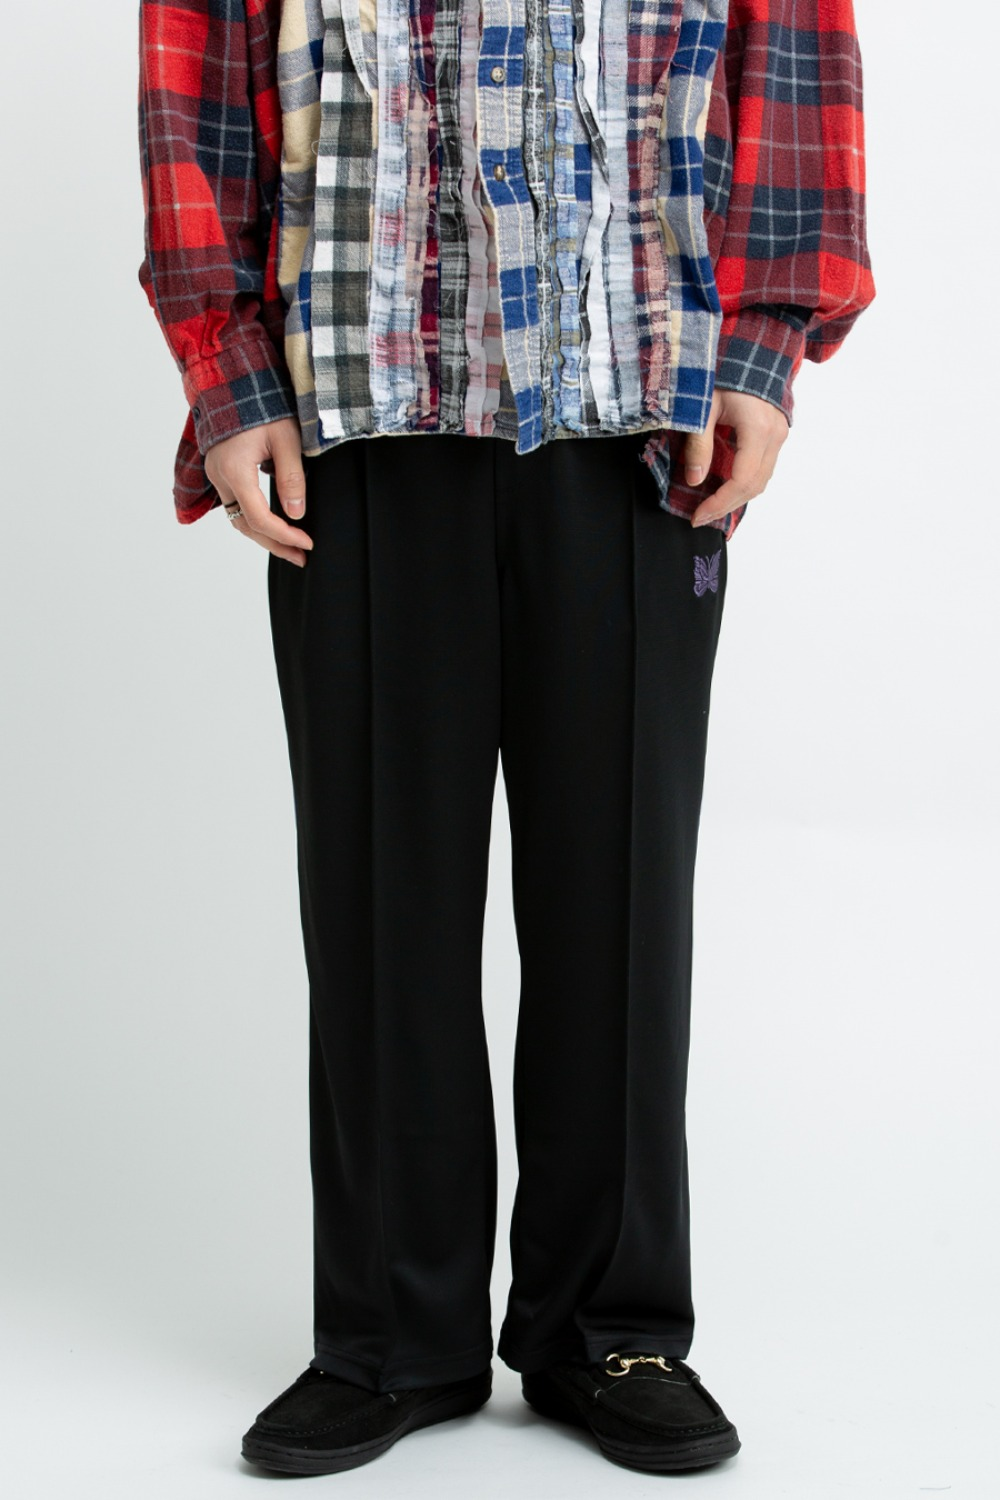 NEEDLES S.L. SEAM POCKET PANT - BRIGHT JERSEY BLACK